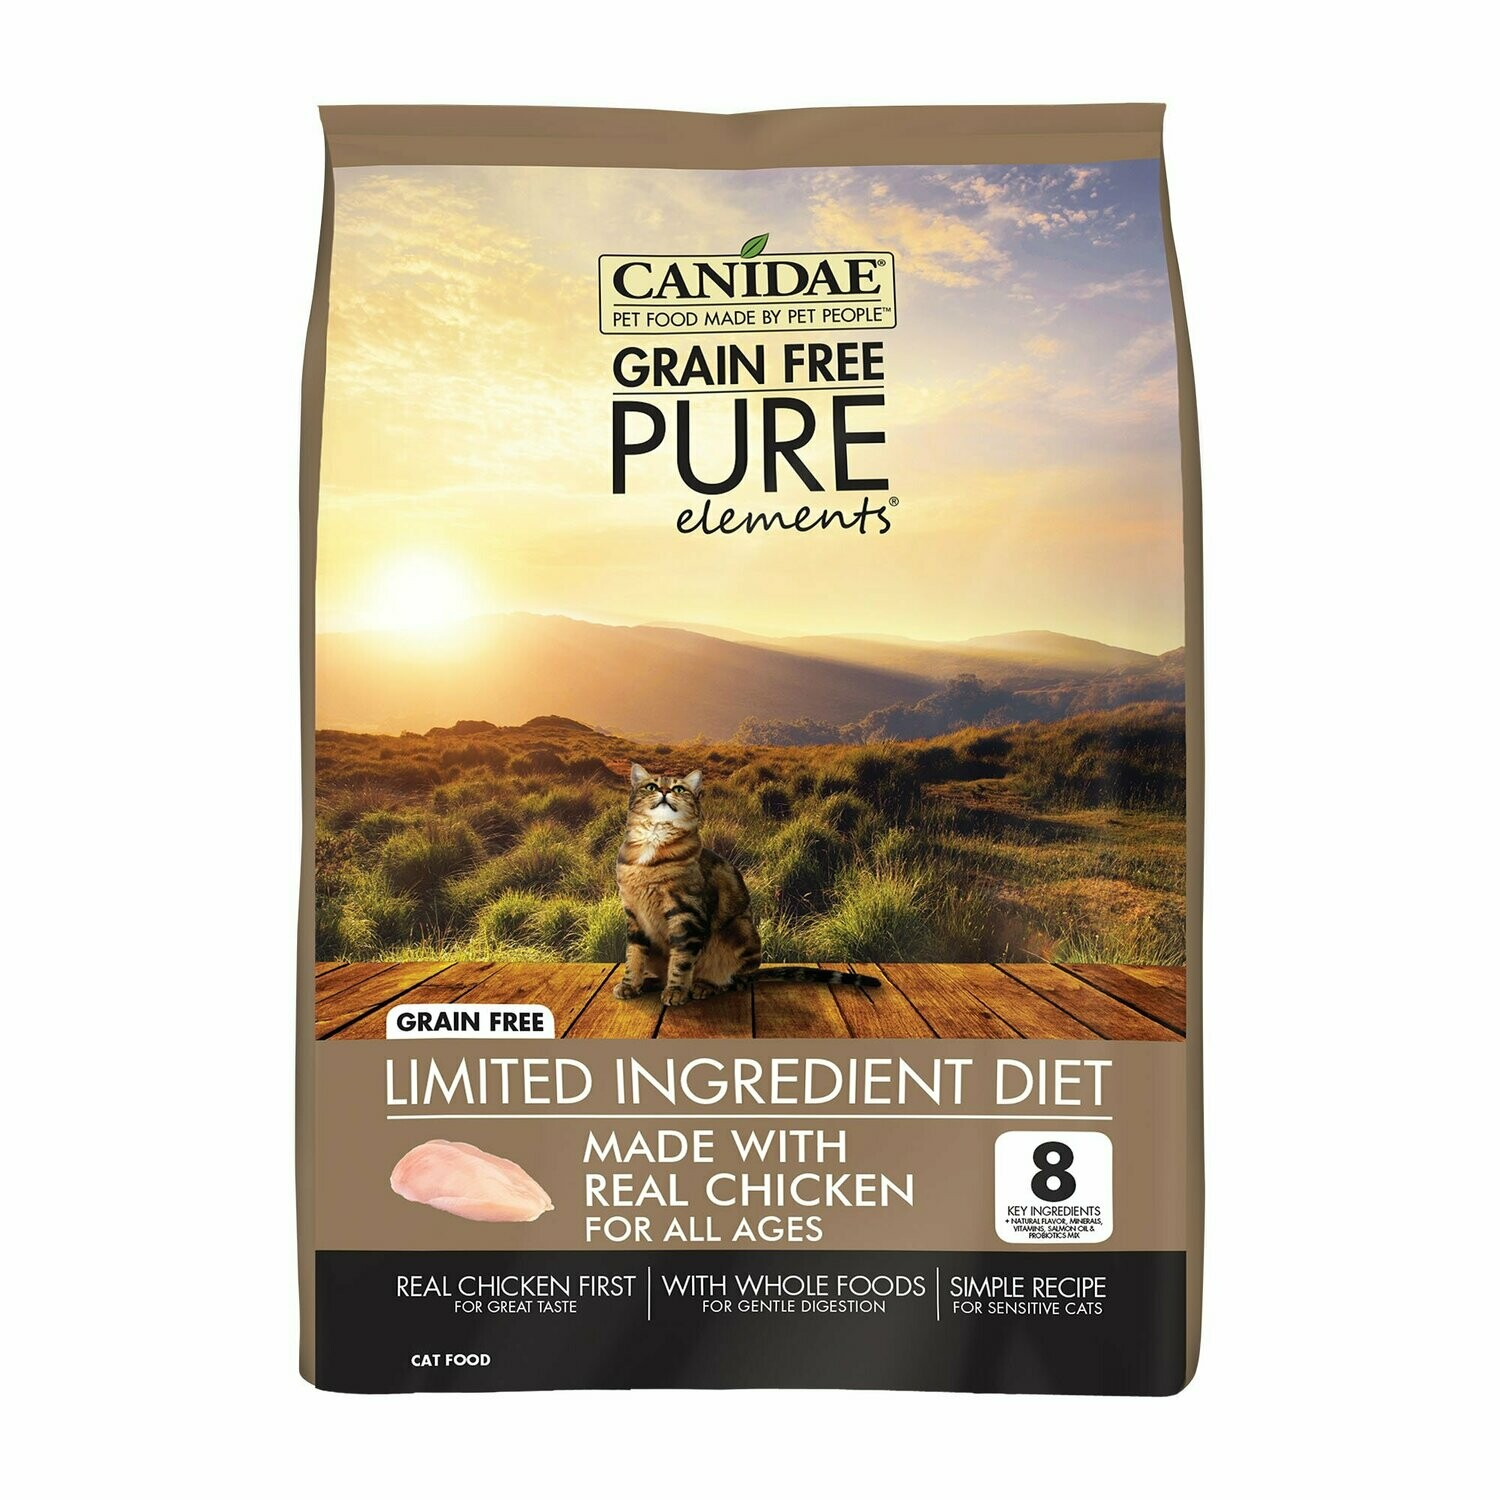 CANIDAE Grain-Free PURE Elements Adult Cat Formula Made With Fresh Chicken, 2.5 LBS